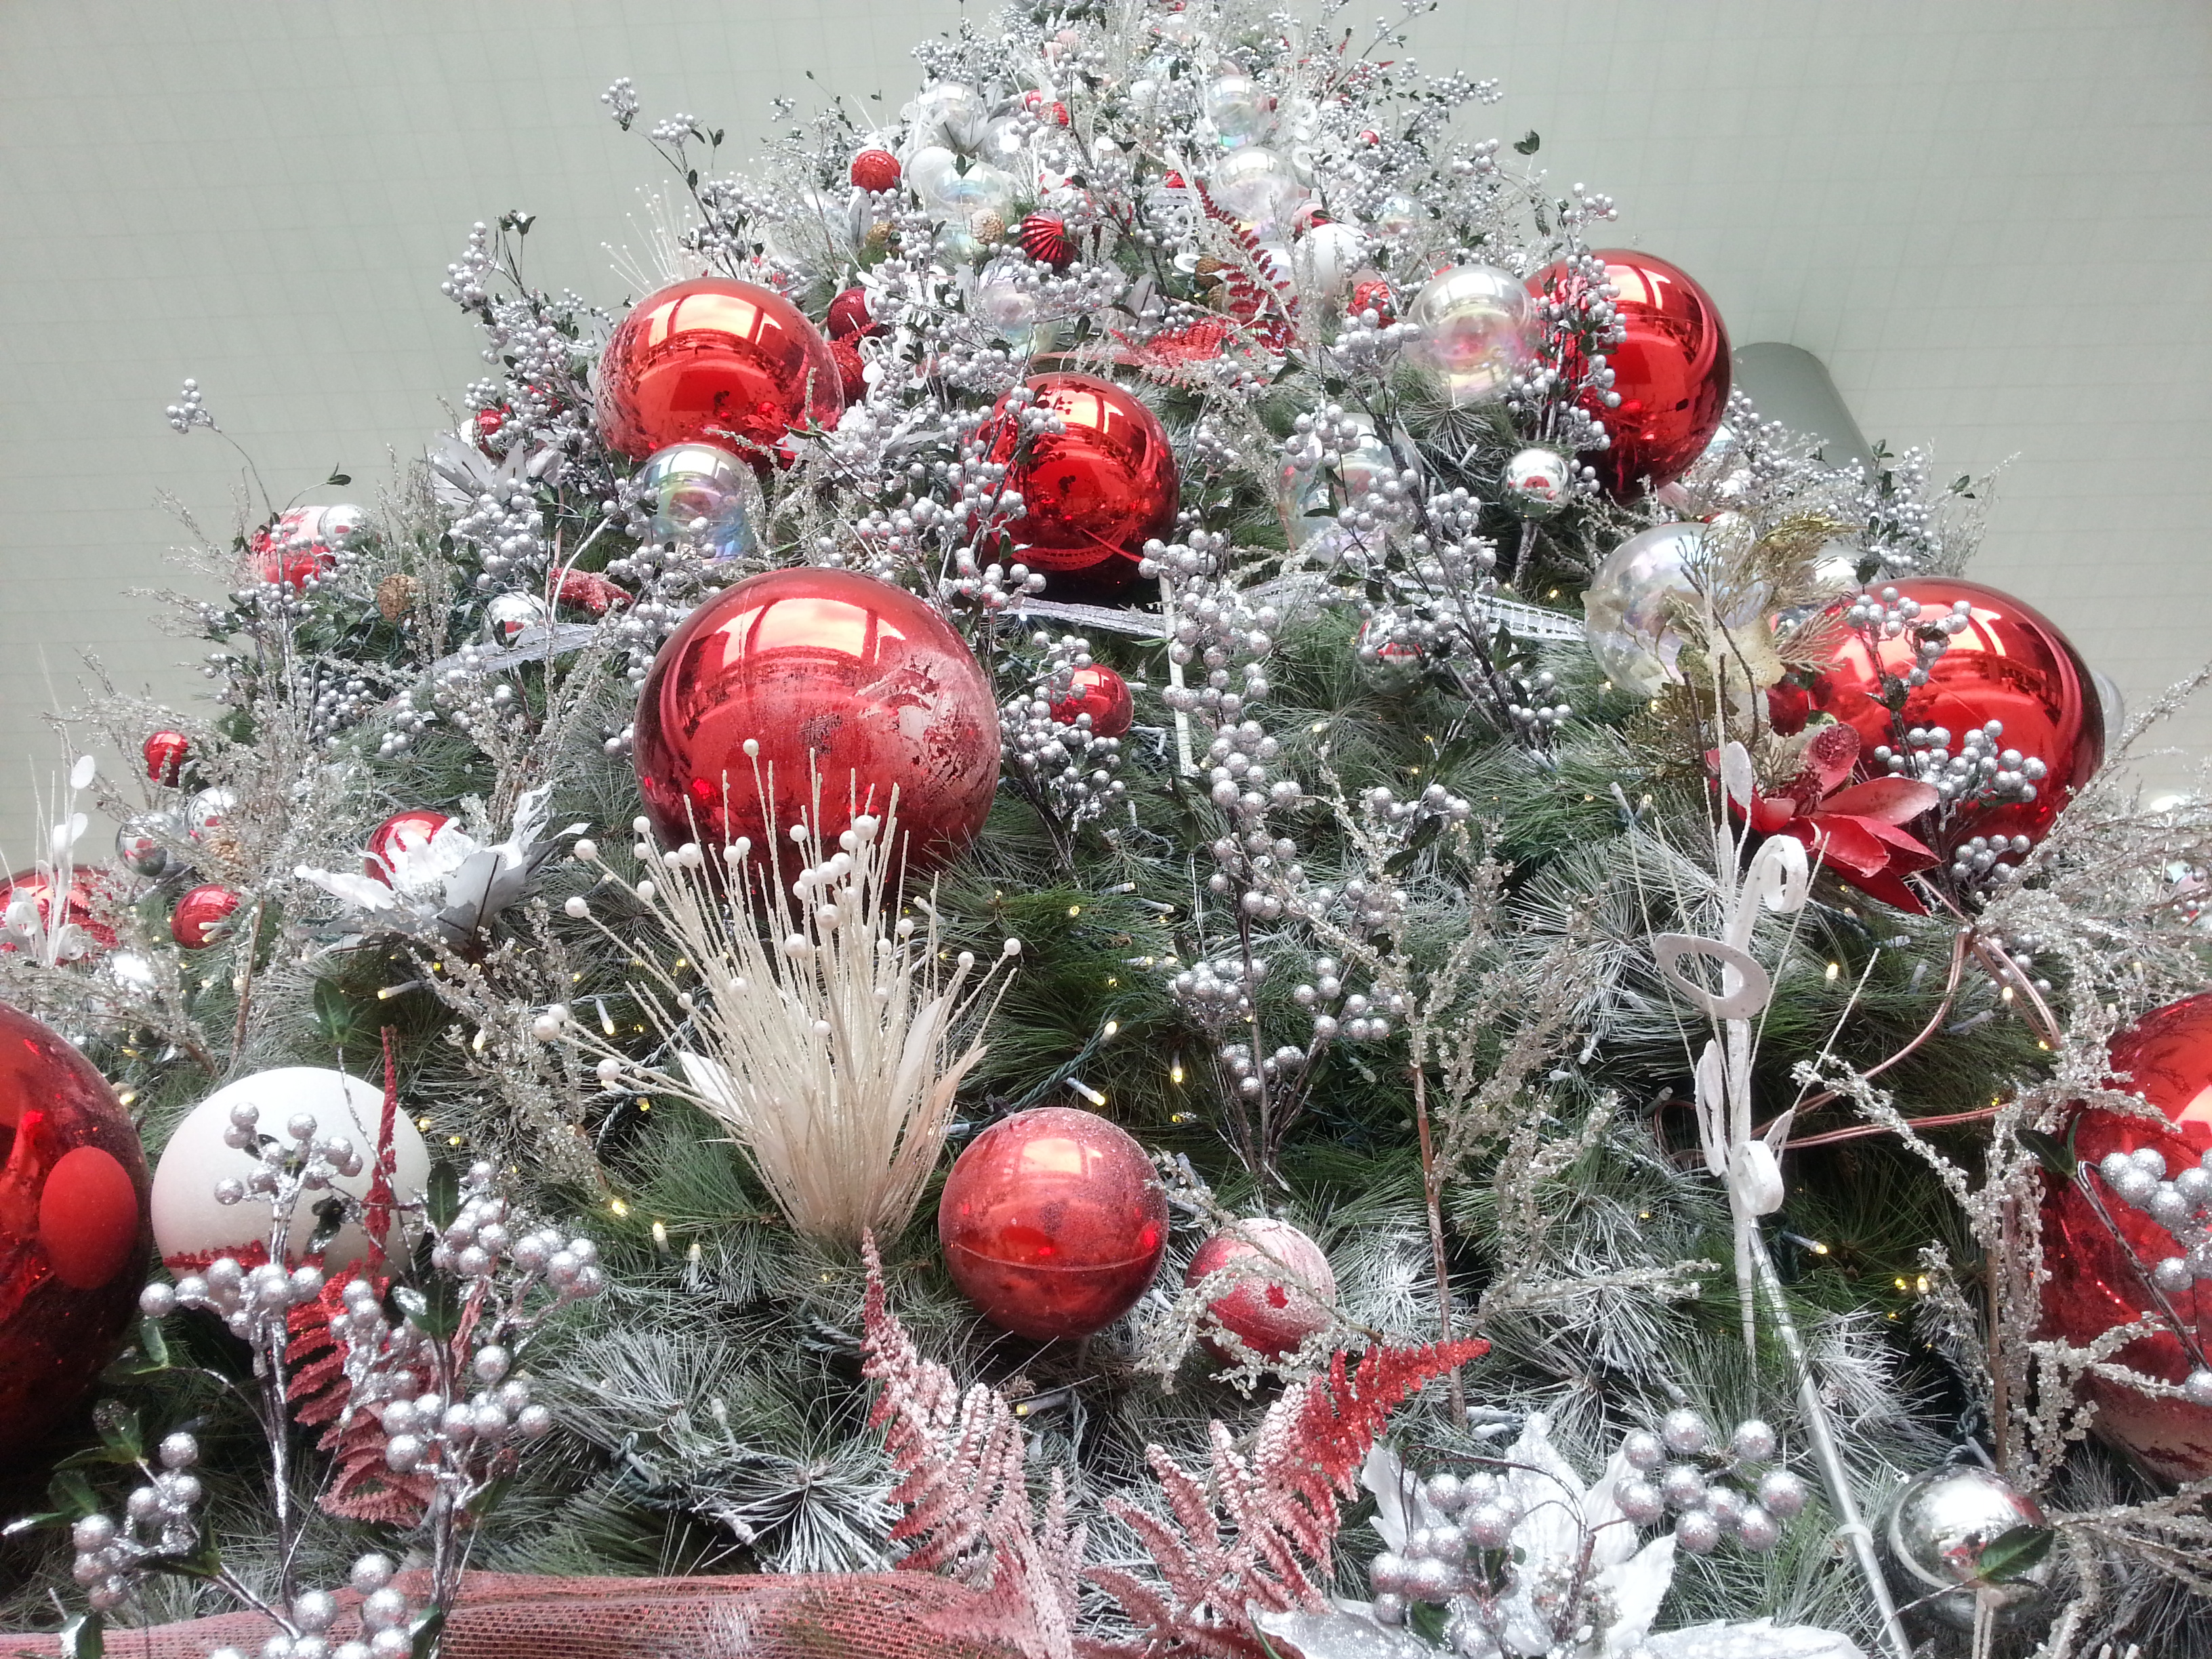 How to start a christmas decor business - We Are Honoured To Be Organising Christmas Performance For Mapletree Business City A Simple And Generous Move By Mapletree Business City To Hype Up The